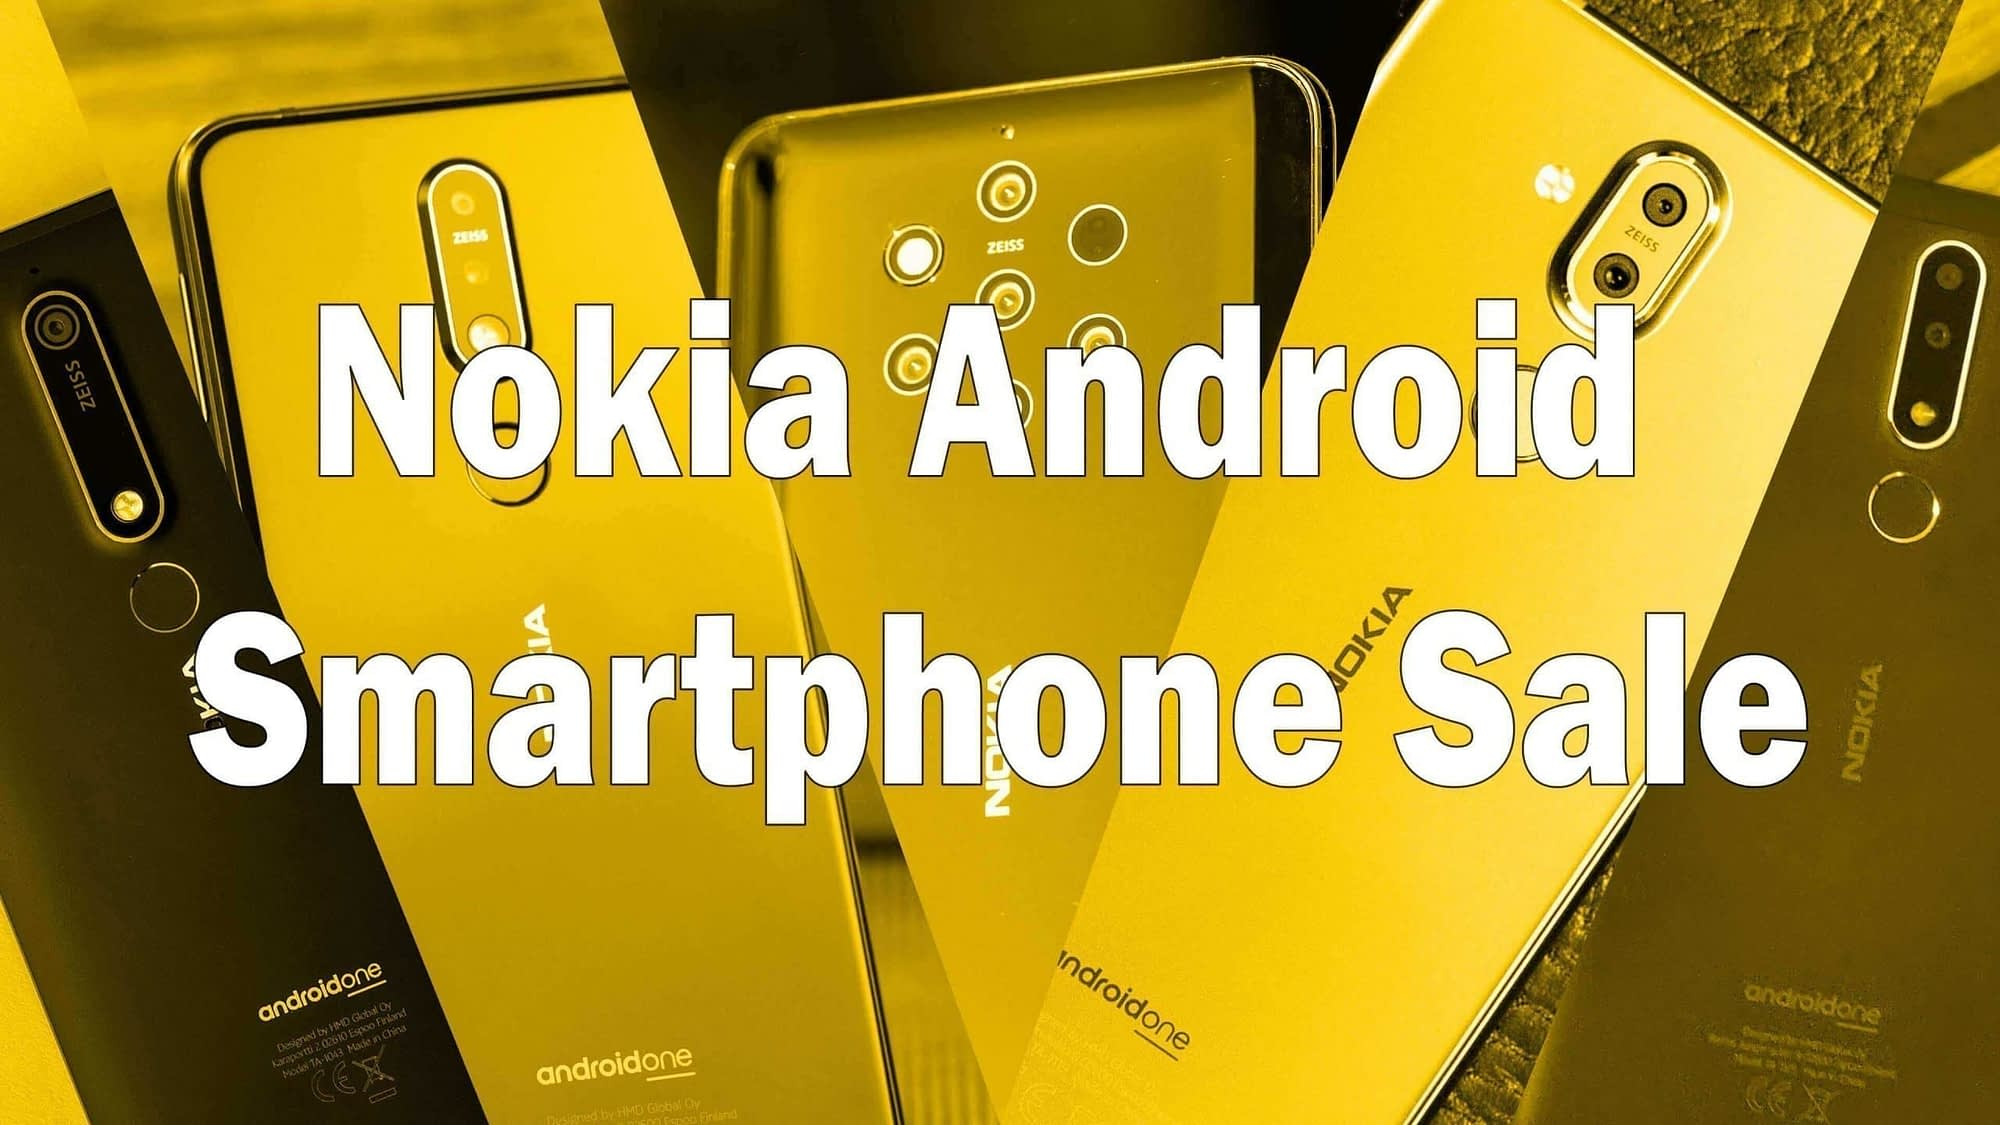 Nokia android smartphone sale